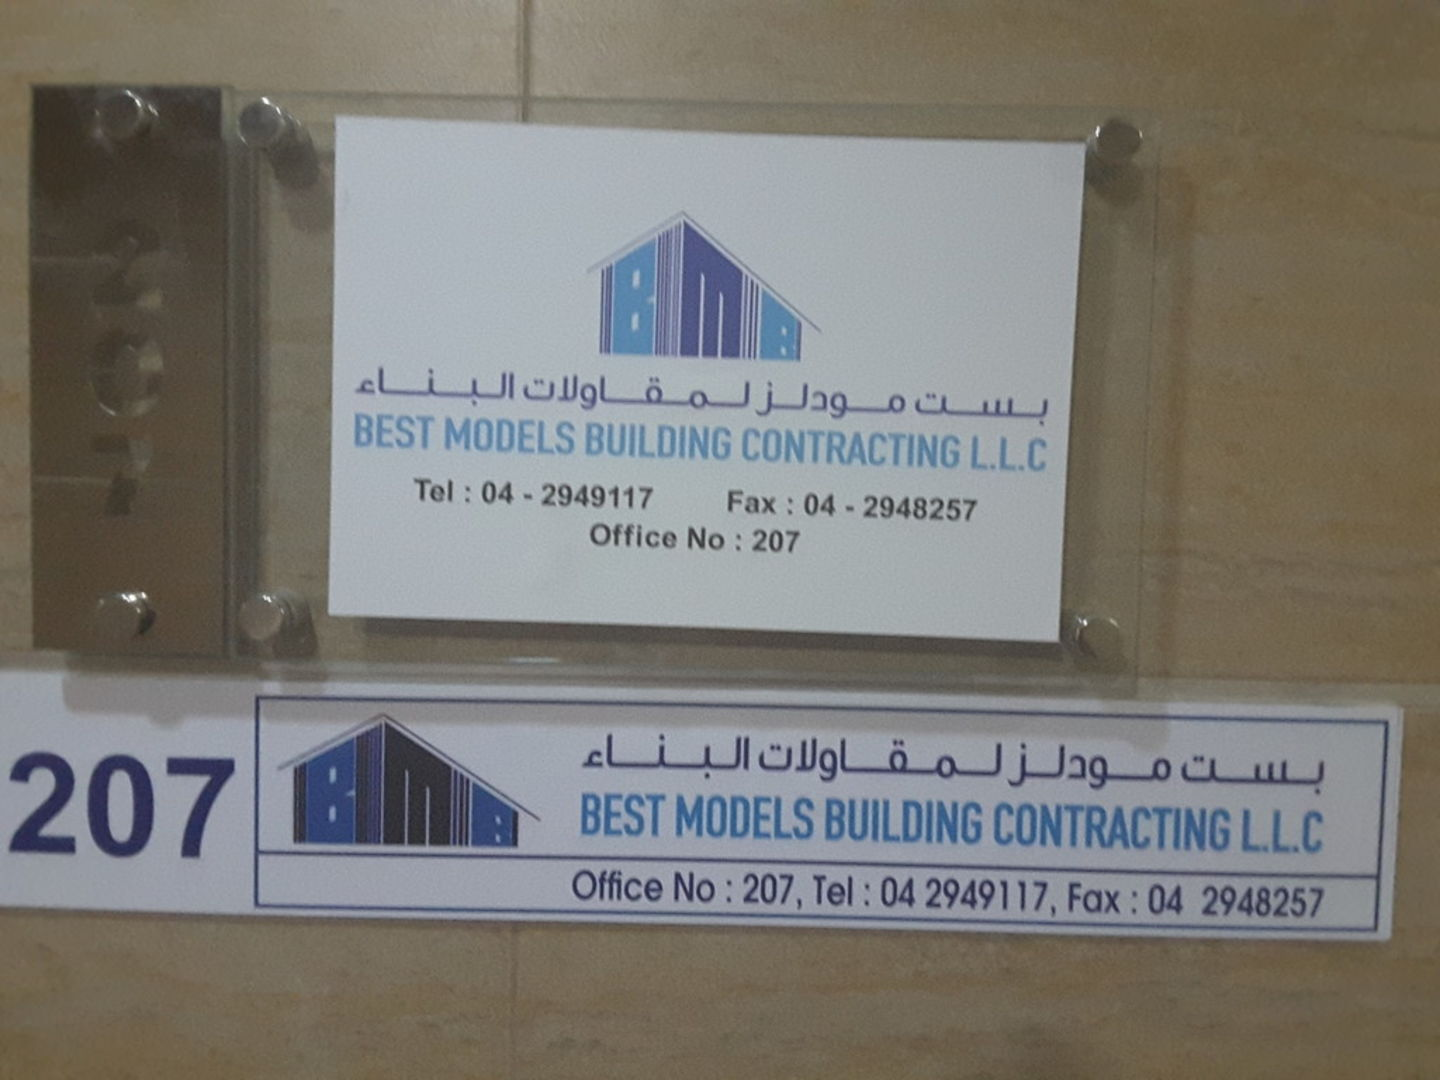 HiDubai-business-best-models-building-contracting-construction-heavy-industries-construction-renovation-dubai-silicon-oasis-nadd-hessa-dubai-2